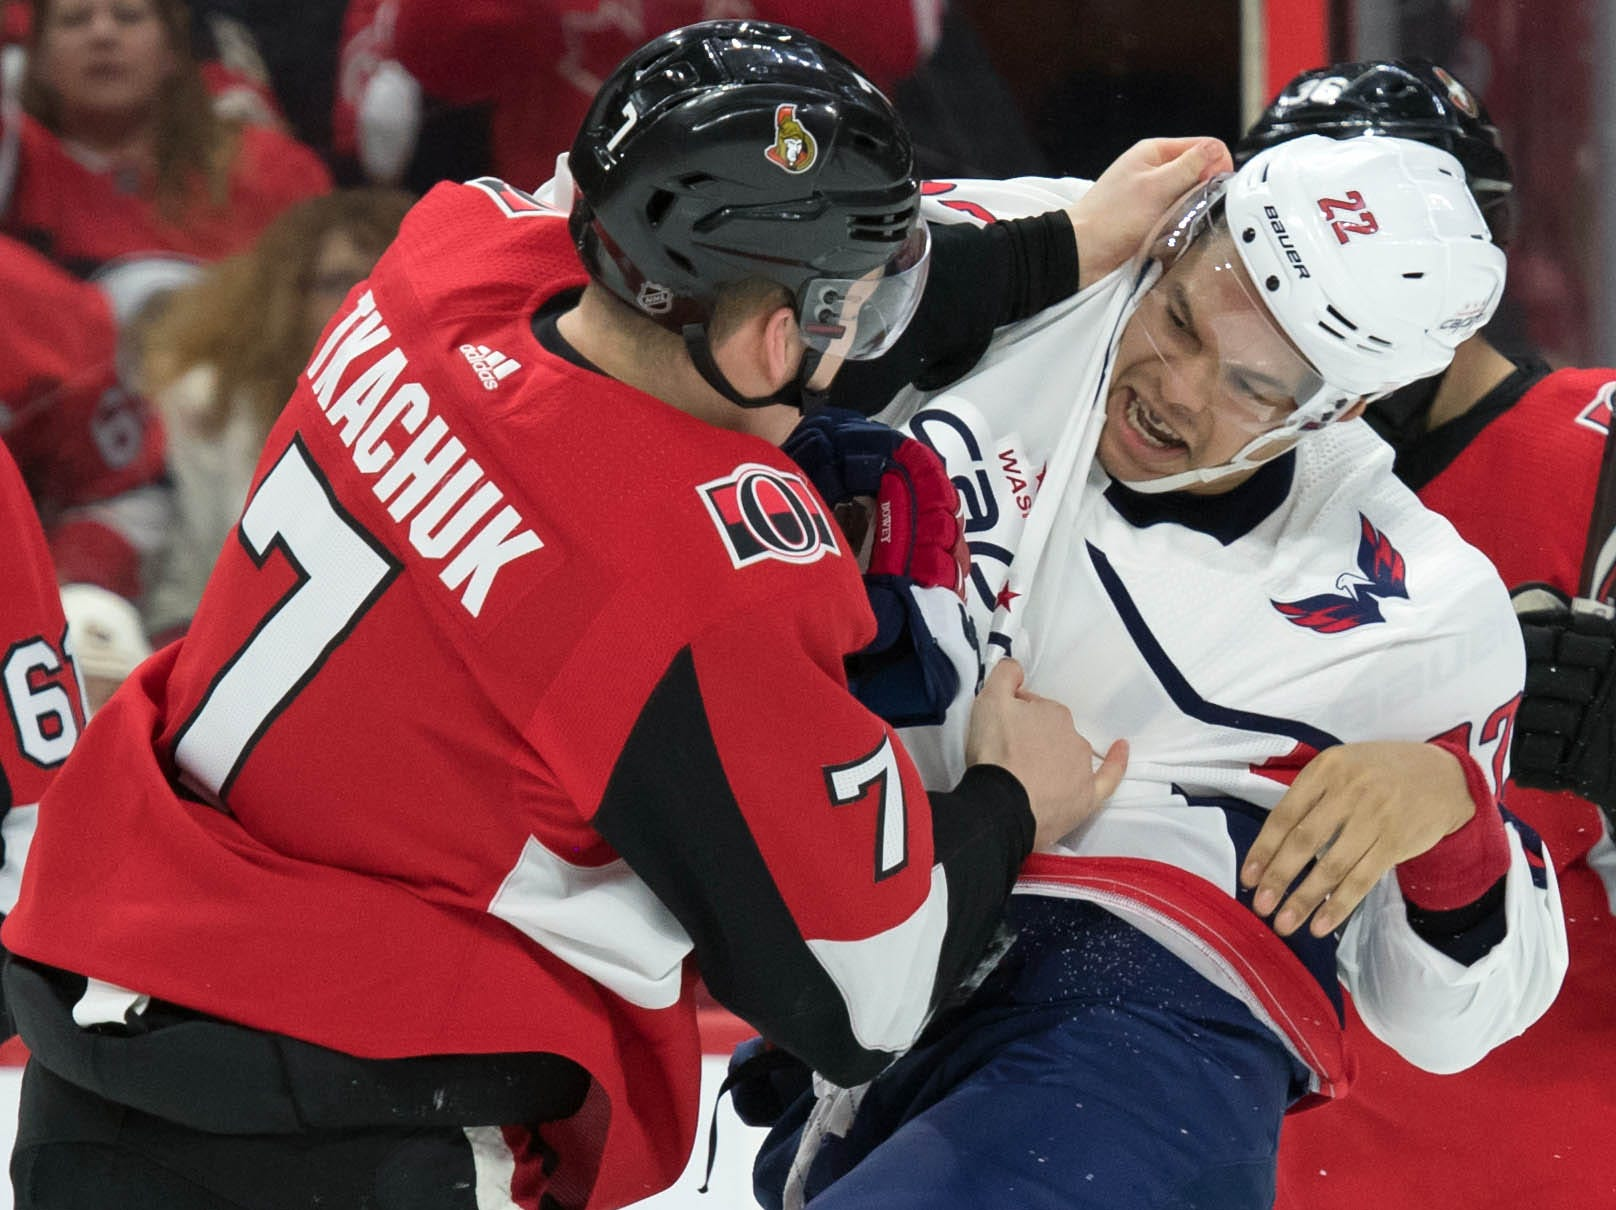 Dec. 29: Ottawa Senators' Brady Tkatchuk vs. Washington Capitals' Madison Bowey.